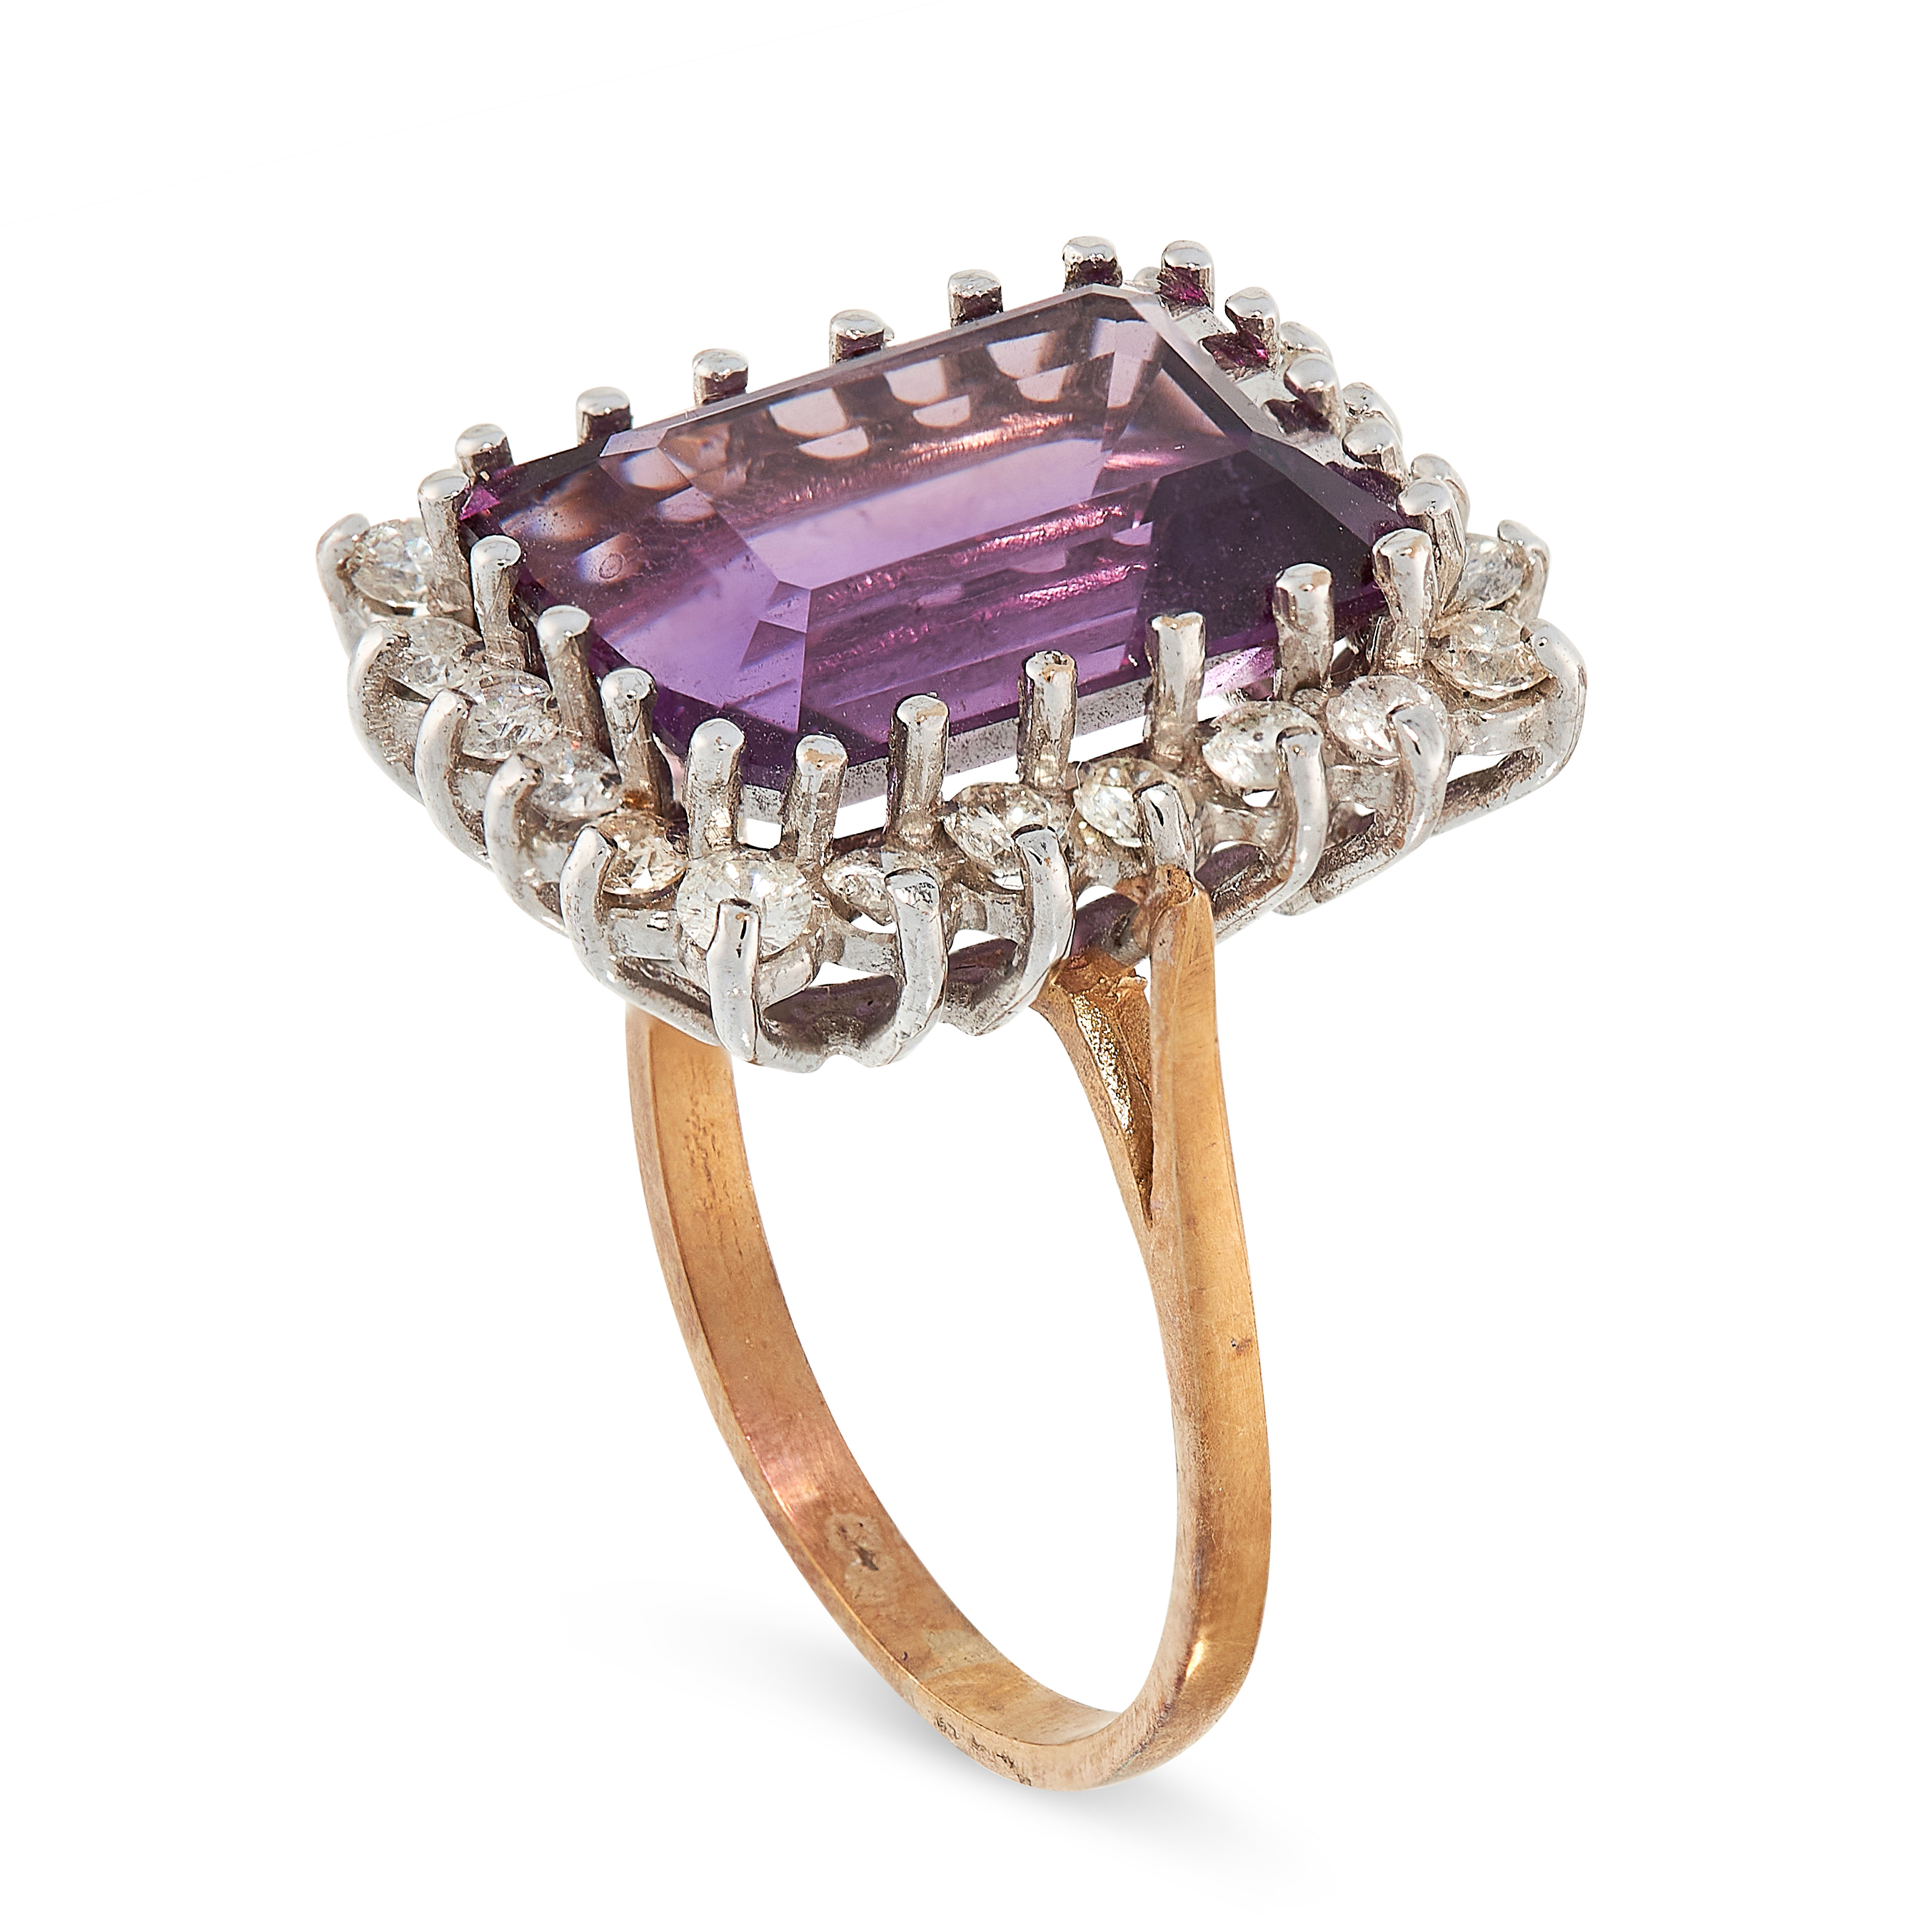 AMETHYST AND DIAMOND RING in yellow gold, comprising of an emerald cut amethyst of 6.82 carats in - Image 2 of 2